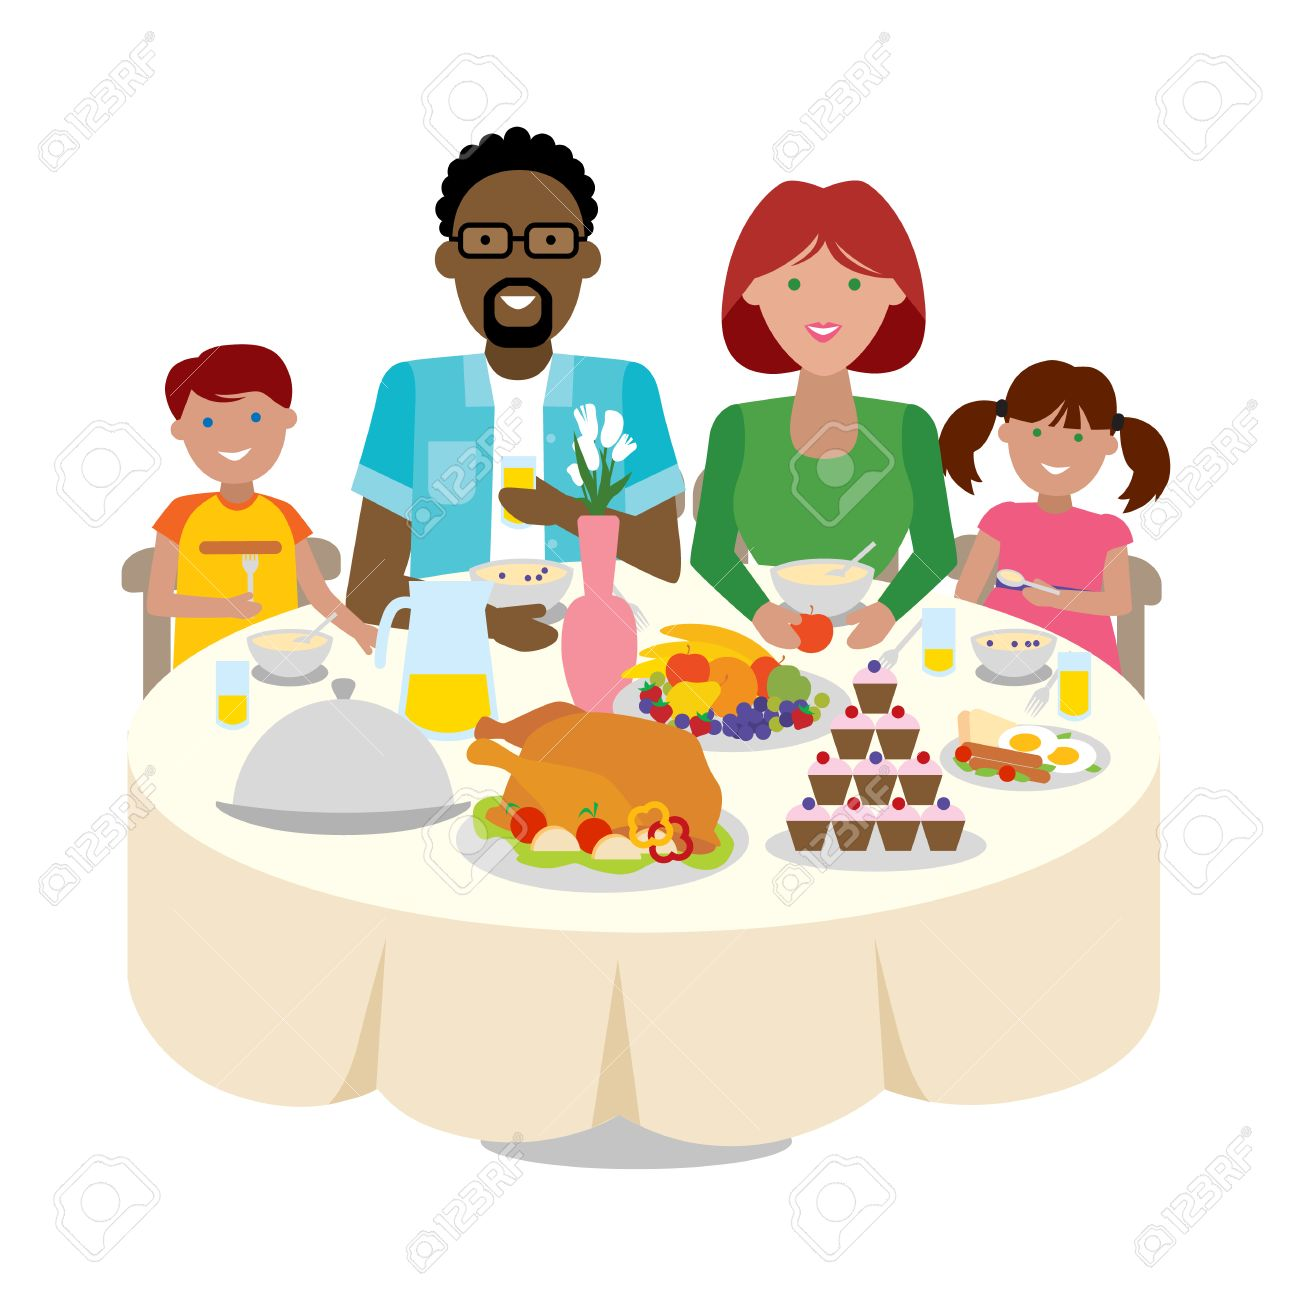 Happy Multicultural Family Dinner Table Thanksgiving Celebration Cake And Turkey Holiday Togetherness